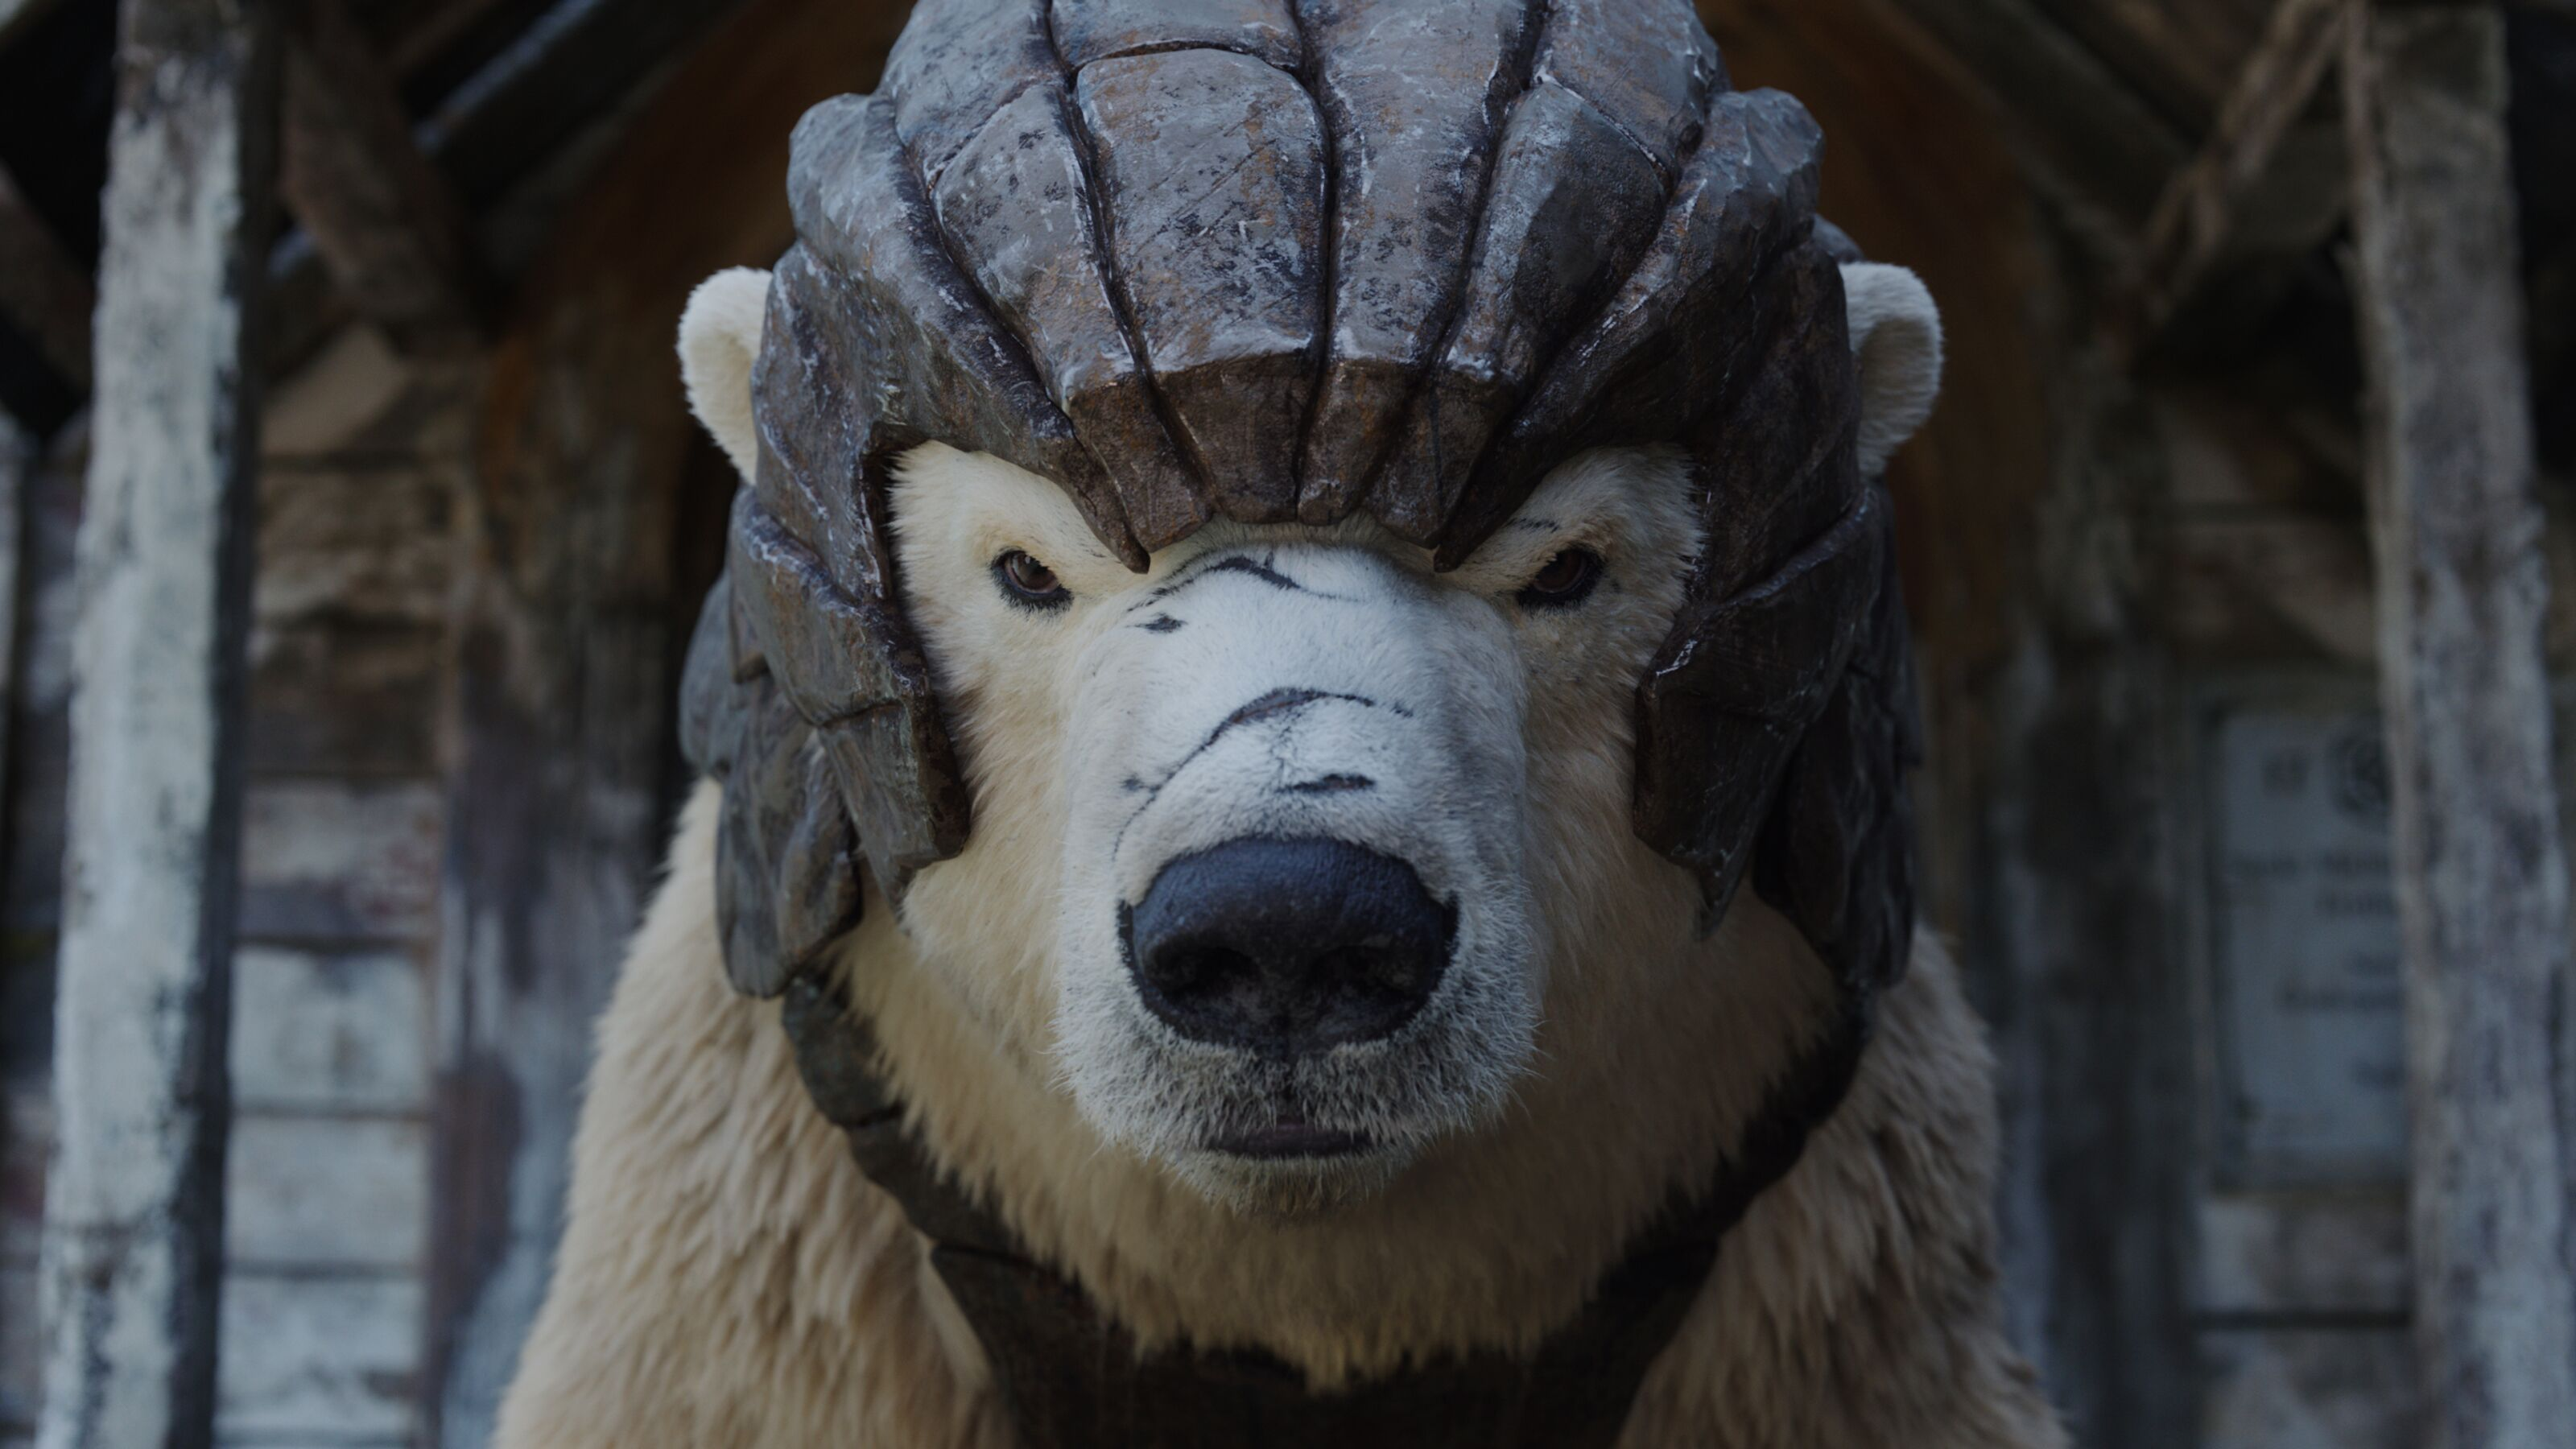 His Dark Materials and more to watch on Amazon this week, Nov. 4